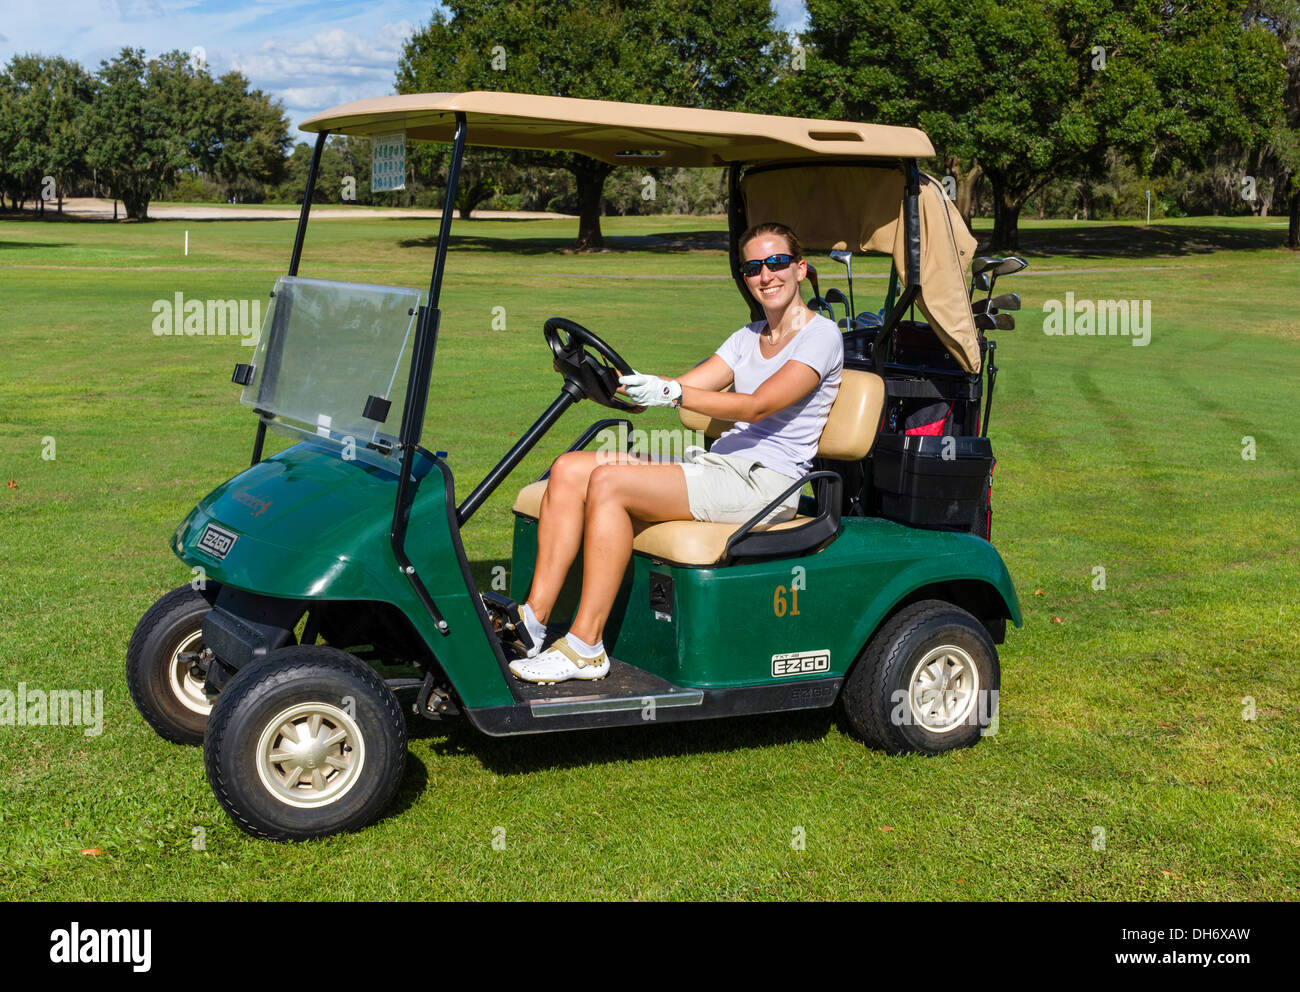 Young woman on a golf cart, Grenelefe Resort, Haines City, Central Florida, USA - Stock Image